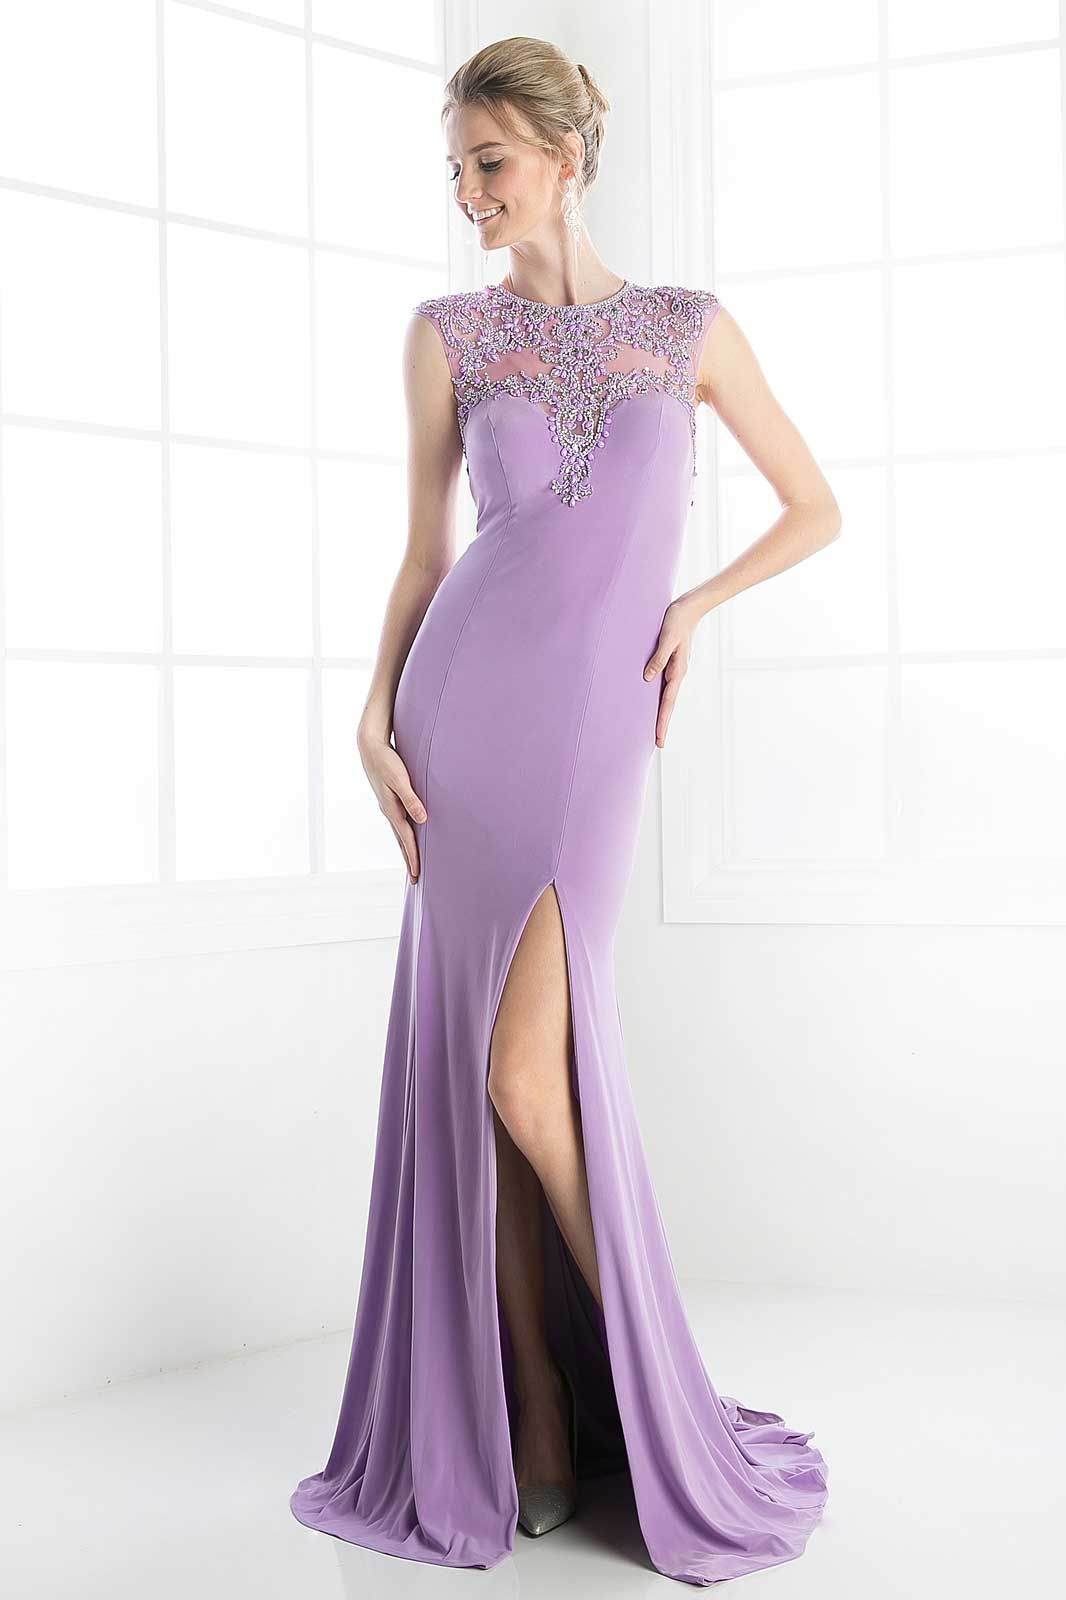 Lavender long evening gown with high slit cfashion